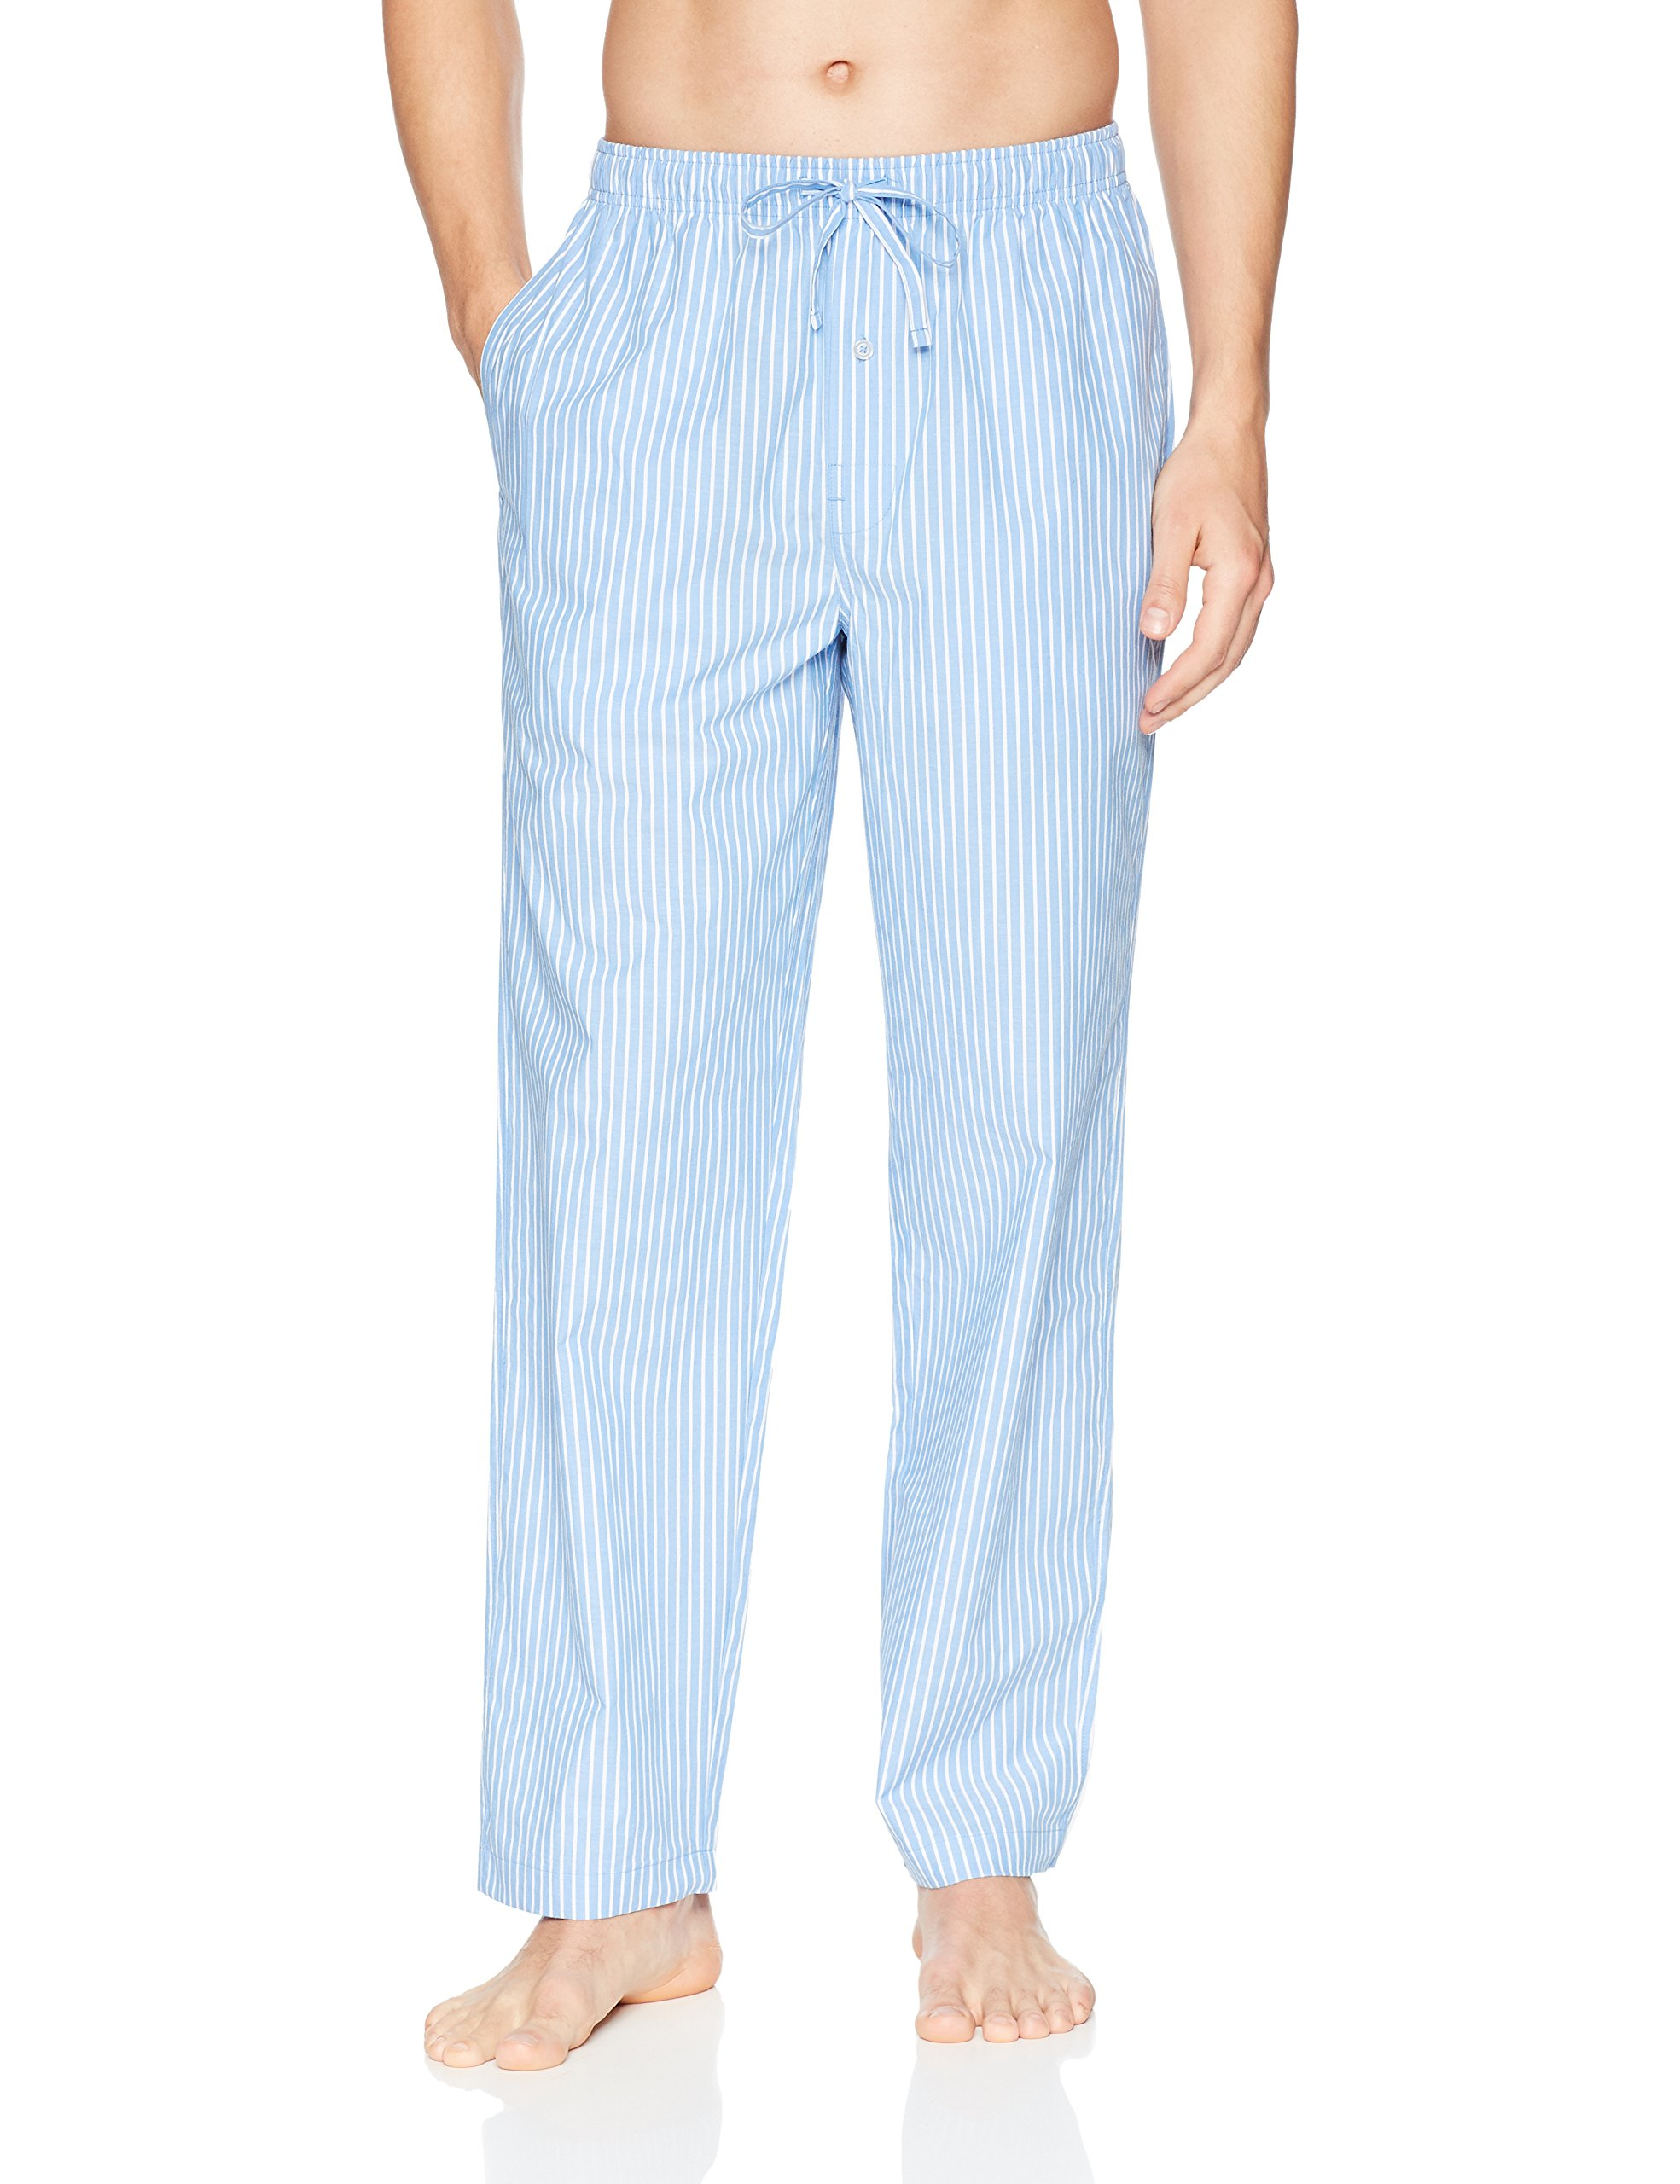 Amazon Essentials Men's Woven Pajama Pant, Light Blue Stripe, Medium by Amazon Essentials